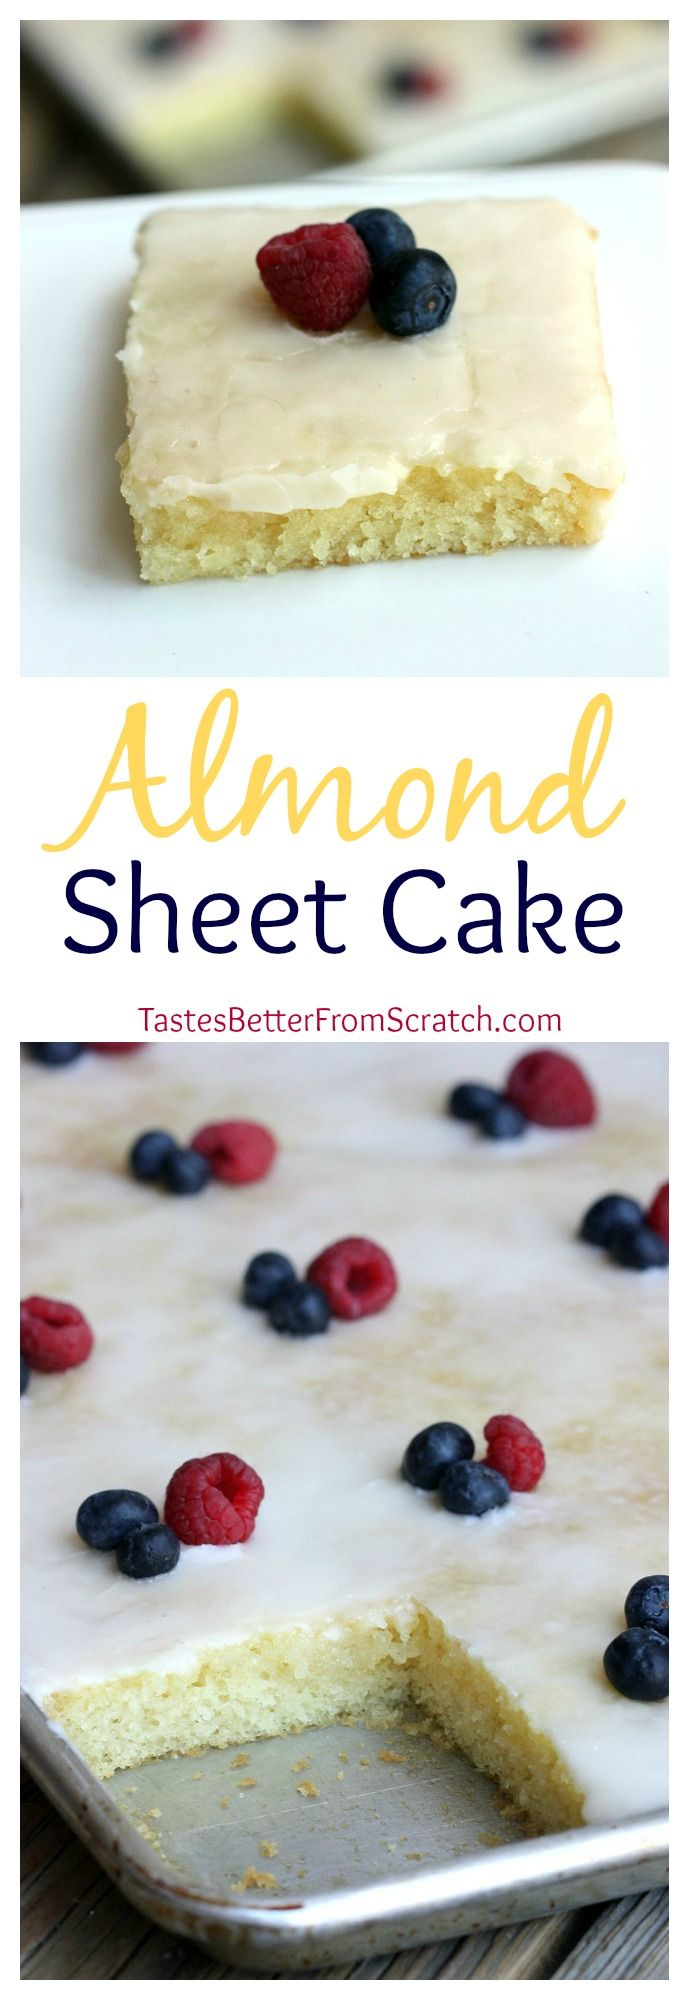 This Almond Sheet Cake could be the best cake I've ever made! So moist and delicious--the frosting your pour on top is to die for! On MyRecipeMagic.com